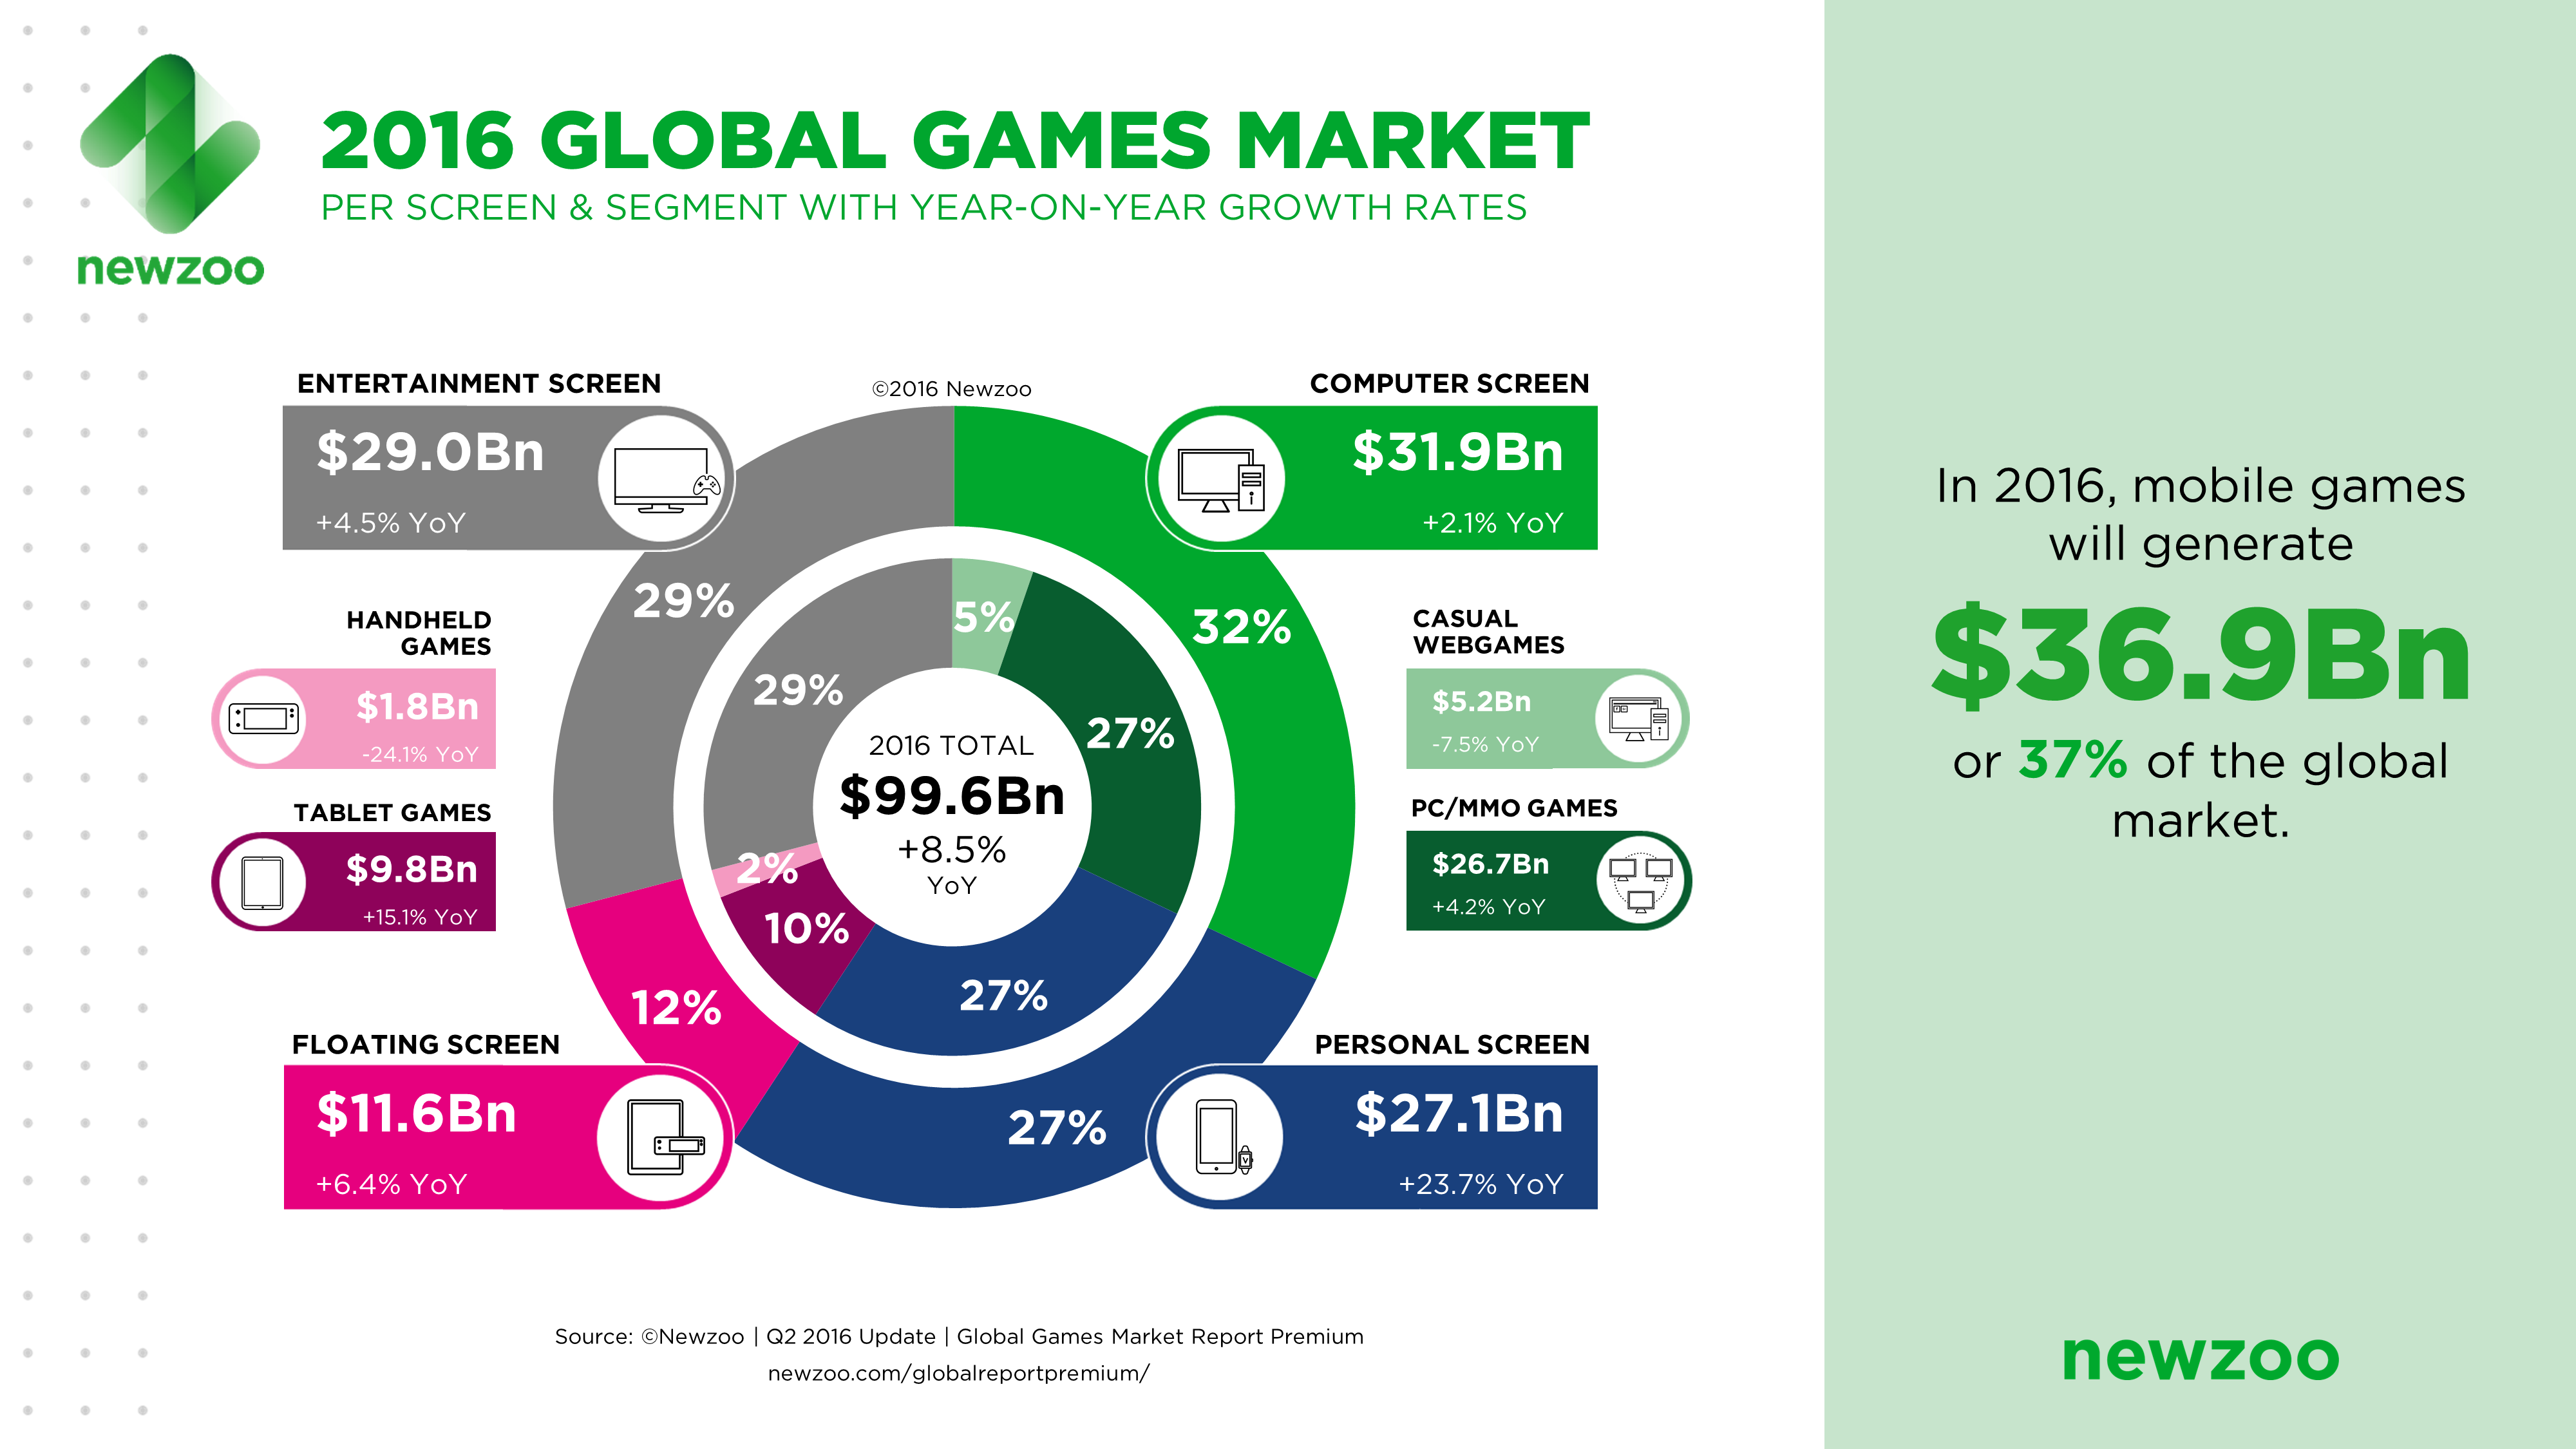 video gaming industry Want to see some juicy data about video game industry check out our ultimate list of the most recent stats & trends about pc gaming, console gaming, mobile gaming, and.